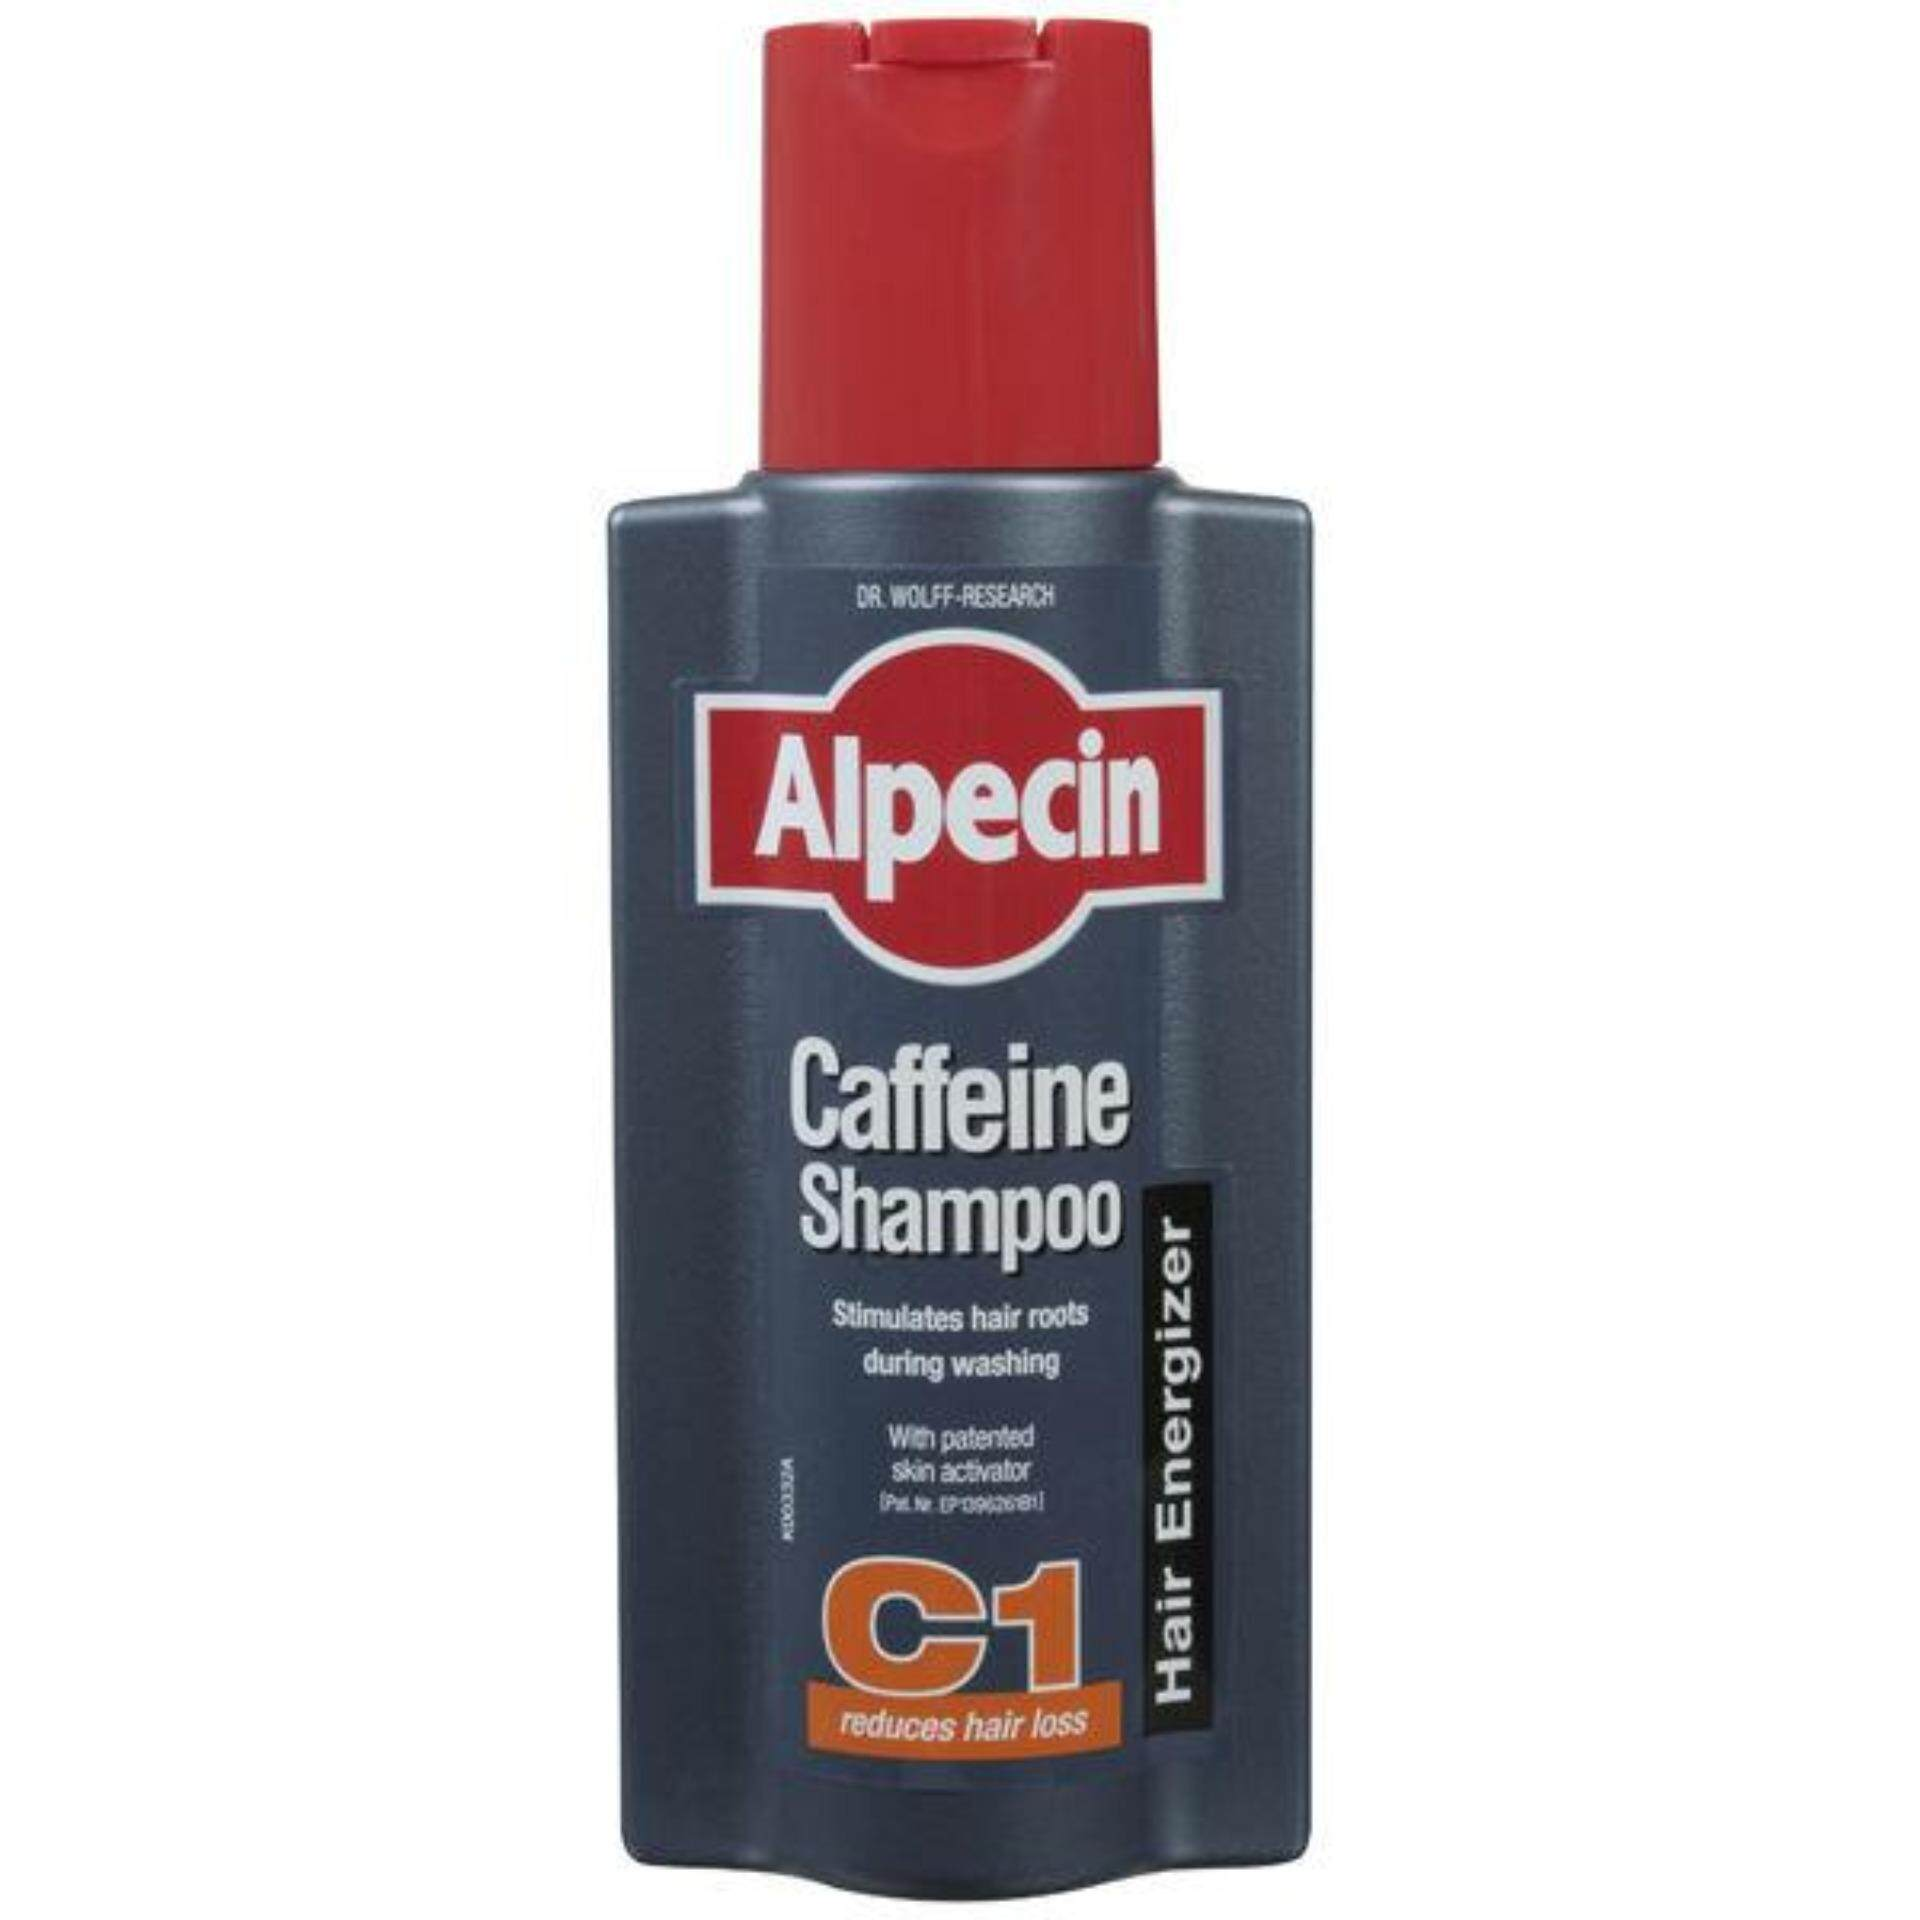 ALPECIN C1 CAFFEINE HAIR LOSS SHAMPOO 250ml